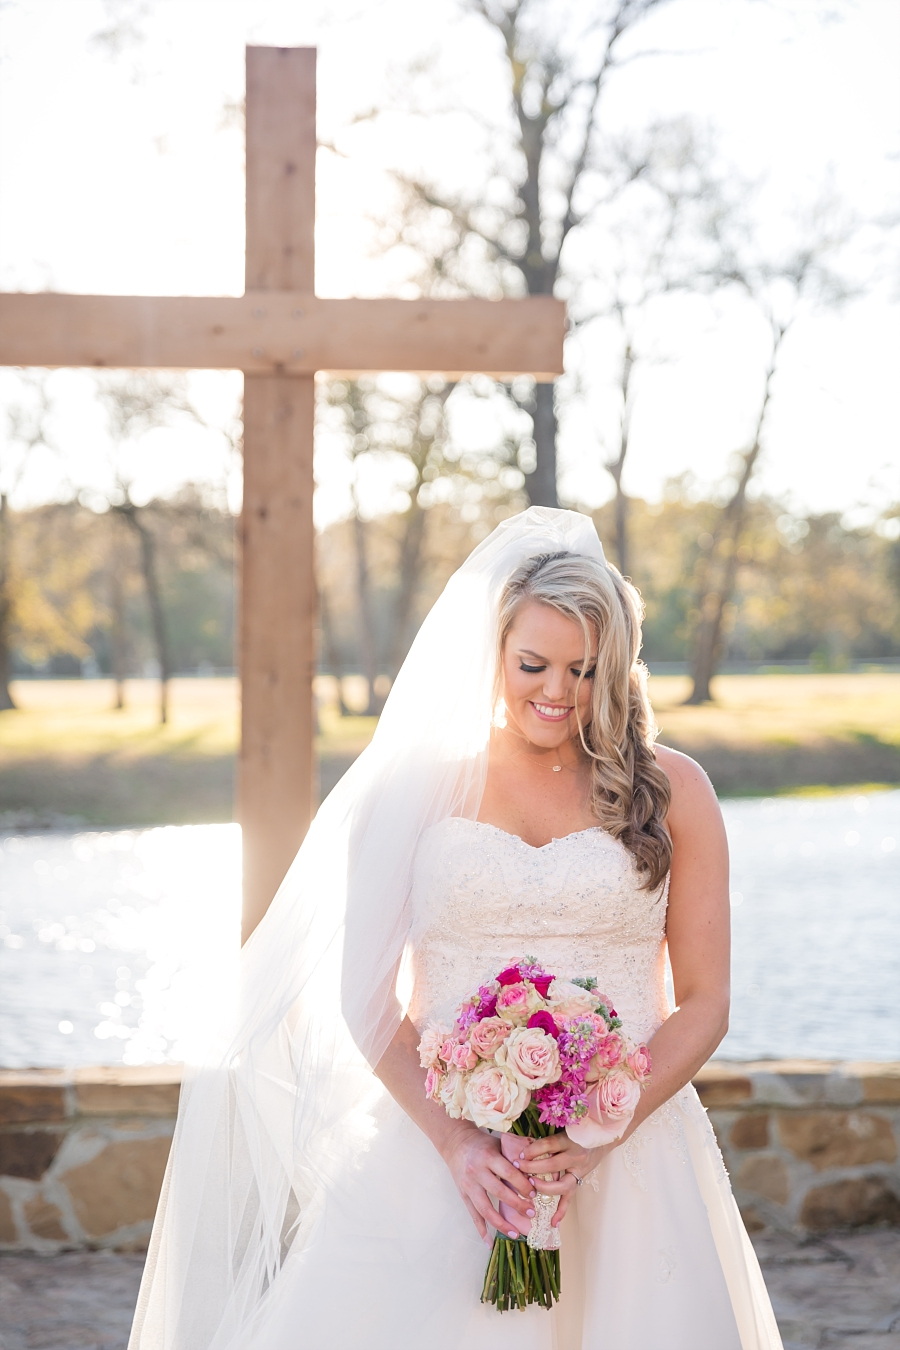 Stacy-Anderson-Photography-Balmorhea-Tomball-Wedding-Photographer_0015.jpg